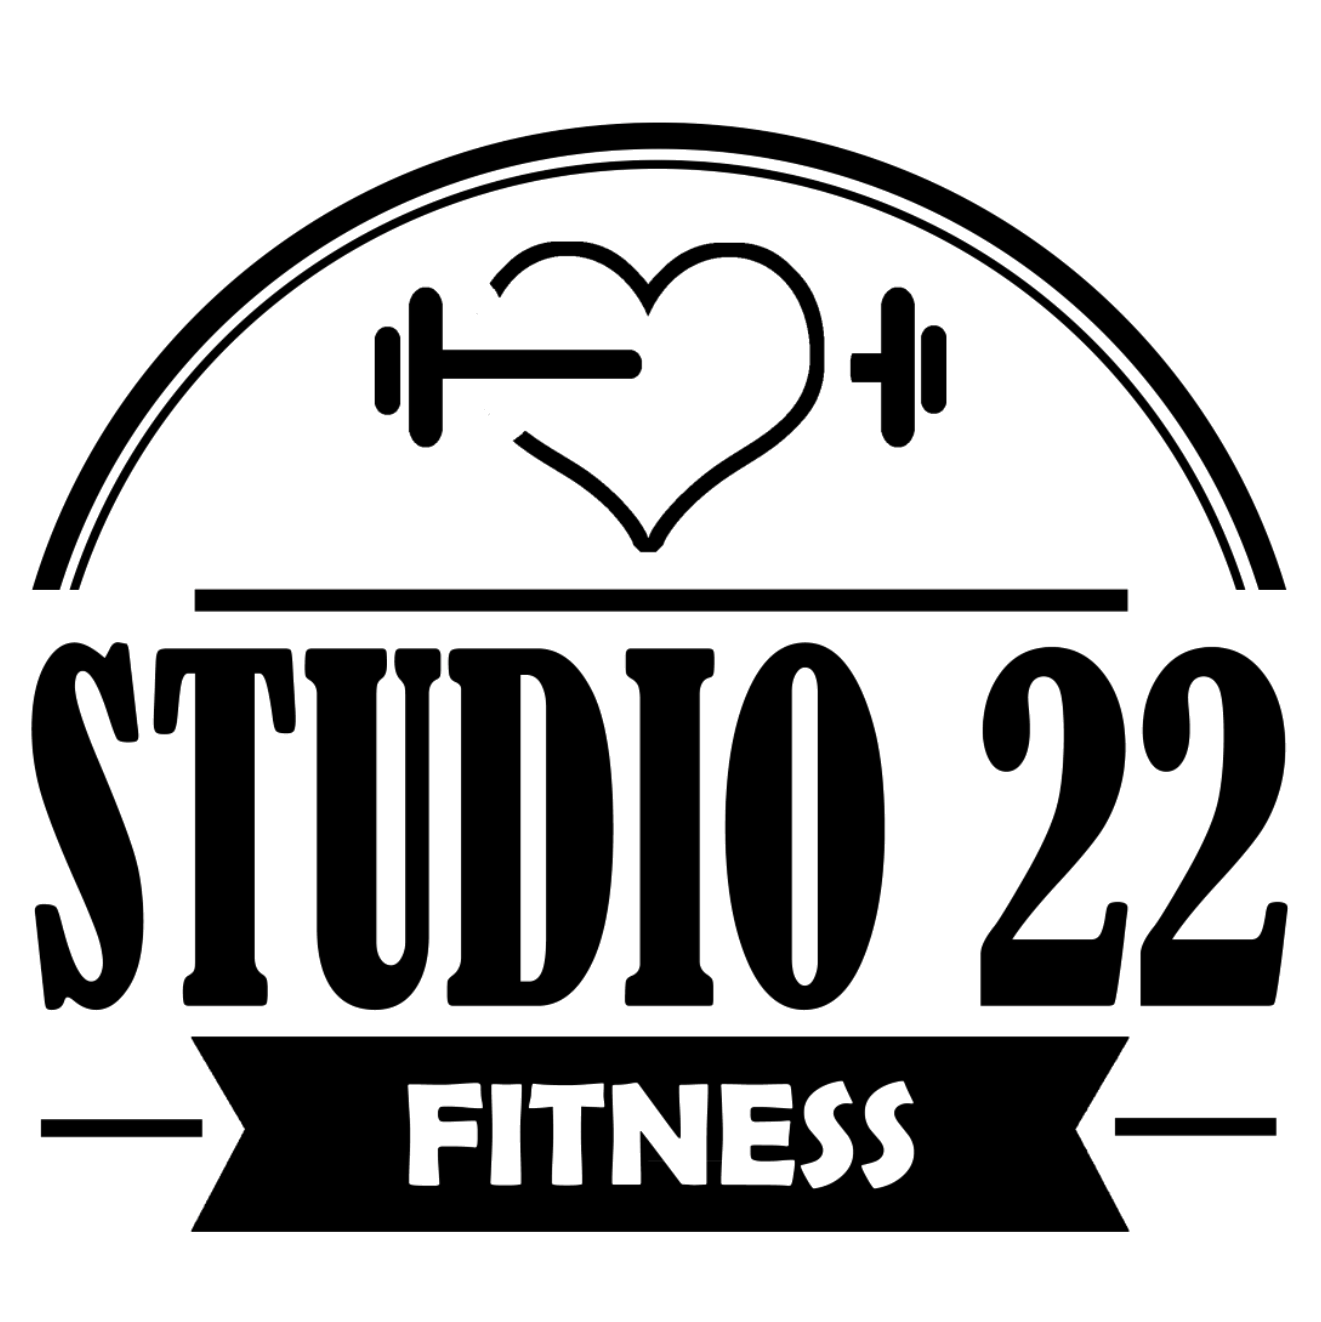 STUDIO 22 FITNESS / ABOUT